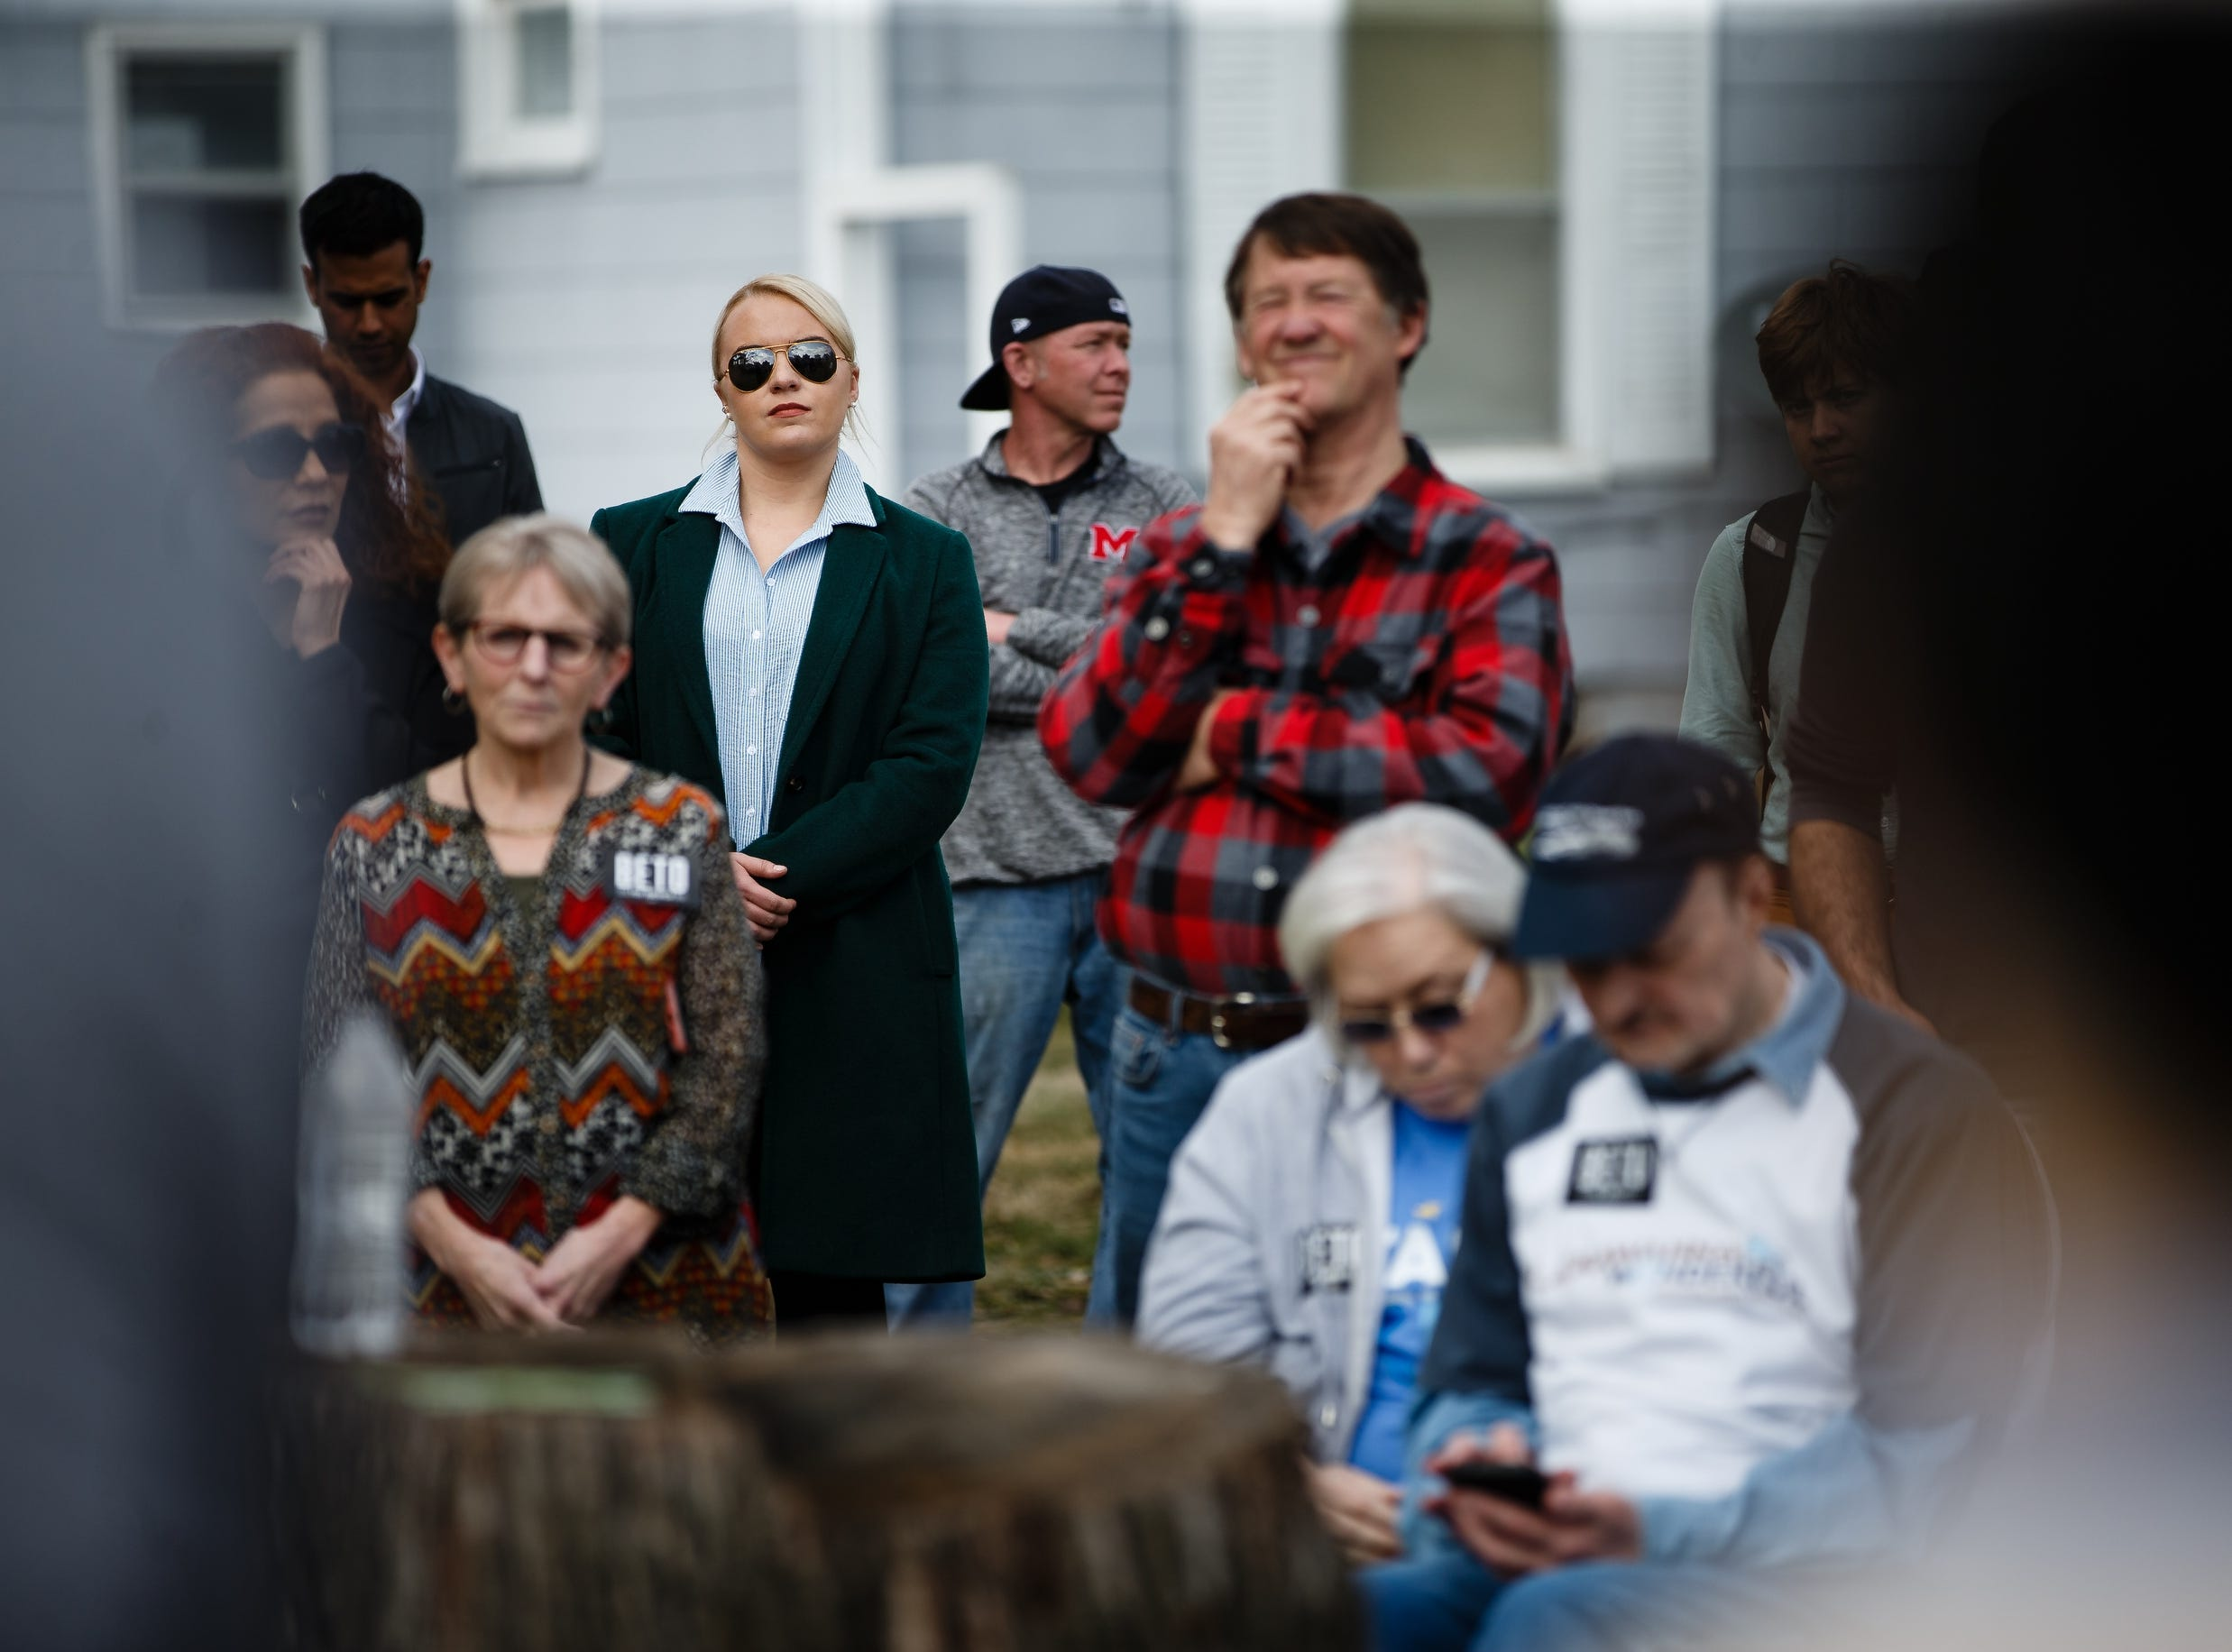 Donning sunglass, campaign staffers watch as 2020 Democratic presidential candidate and former Texas Representative Beto O'Rourke speaks in Marshalltown during a swing though Iowa on Friday, April 5, 2019, in Marshalltown.